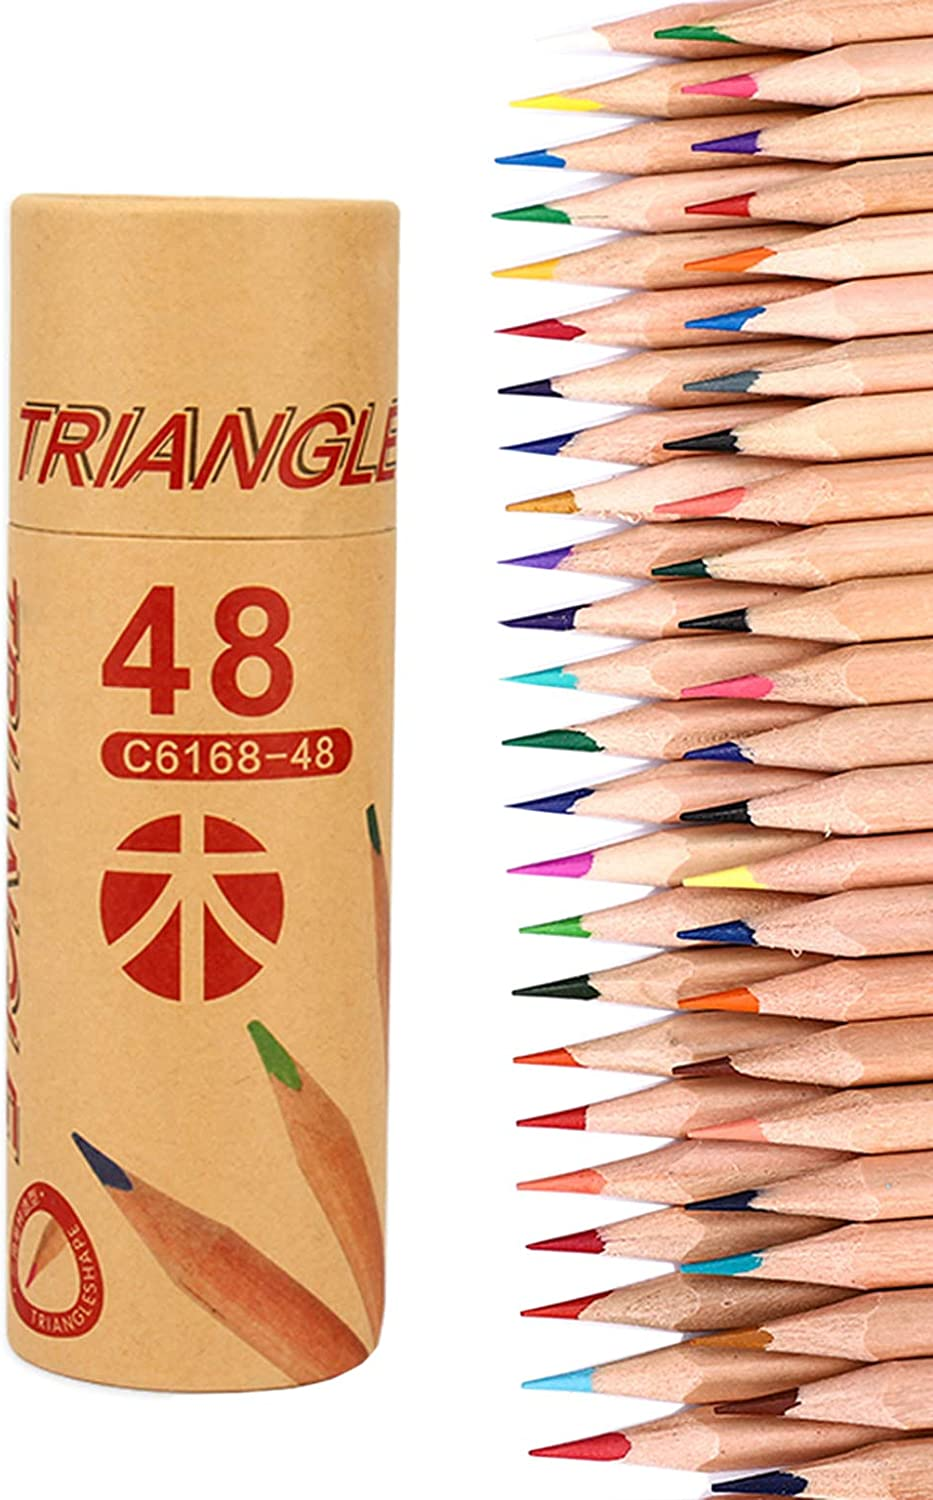 Colored Pencils Assorted Colors Adult/Kids Coloring Art Supplies Colored Pencil Set, 48 Colors #6